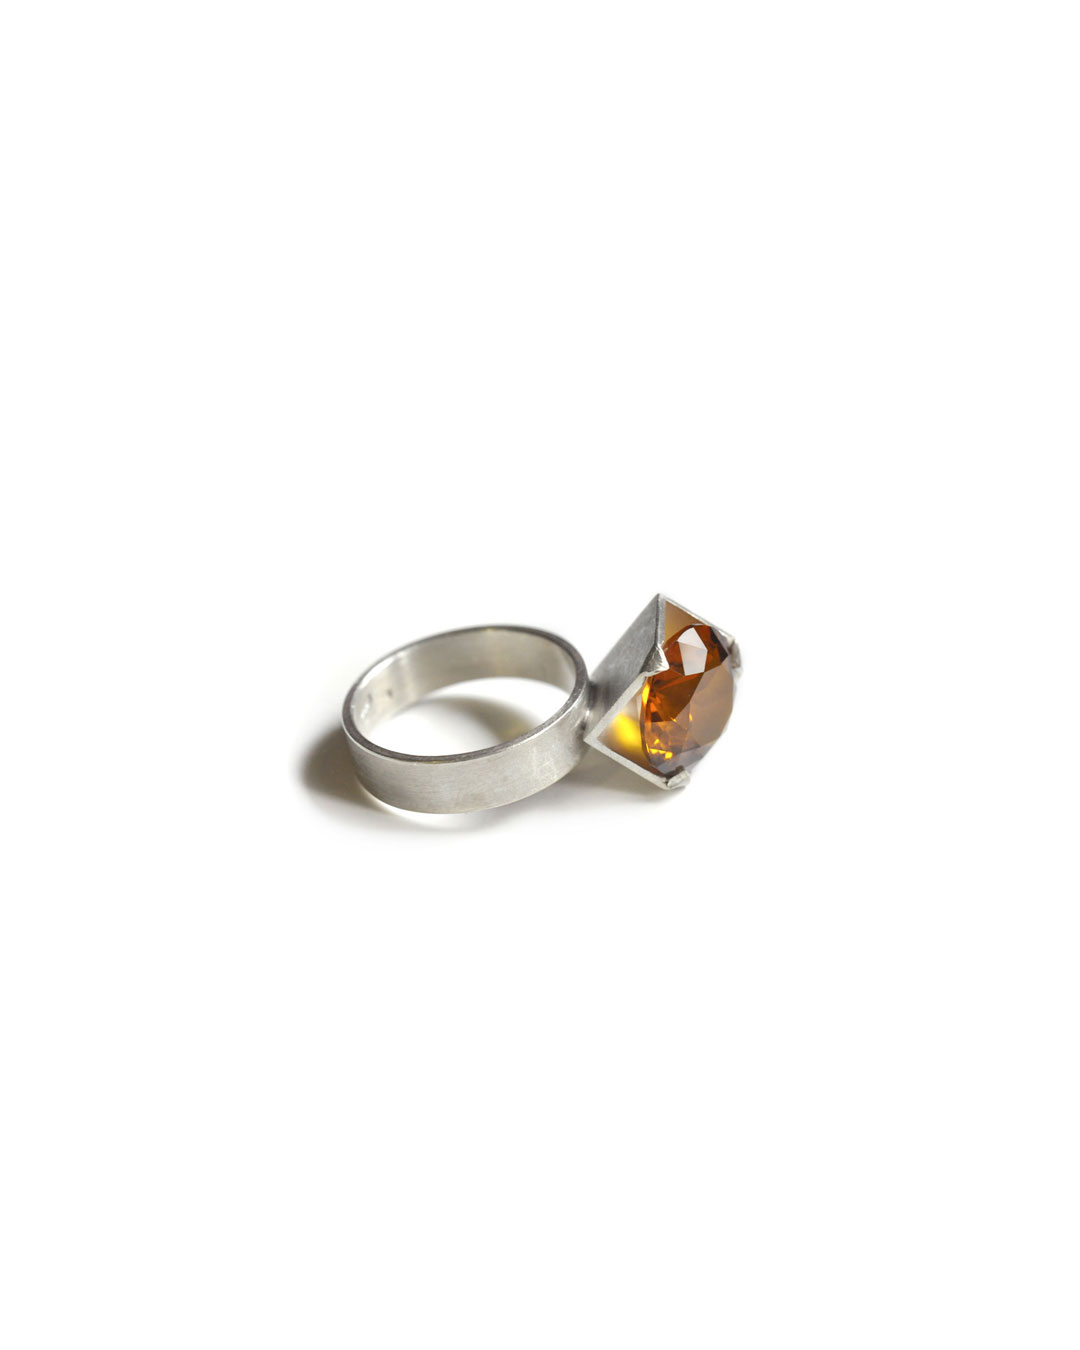 Herman Hermsen, untitled, 1998, ring; silver, synthetic stone, 32 x 14 x 13 mm, €305